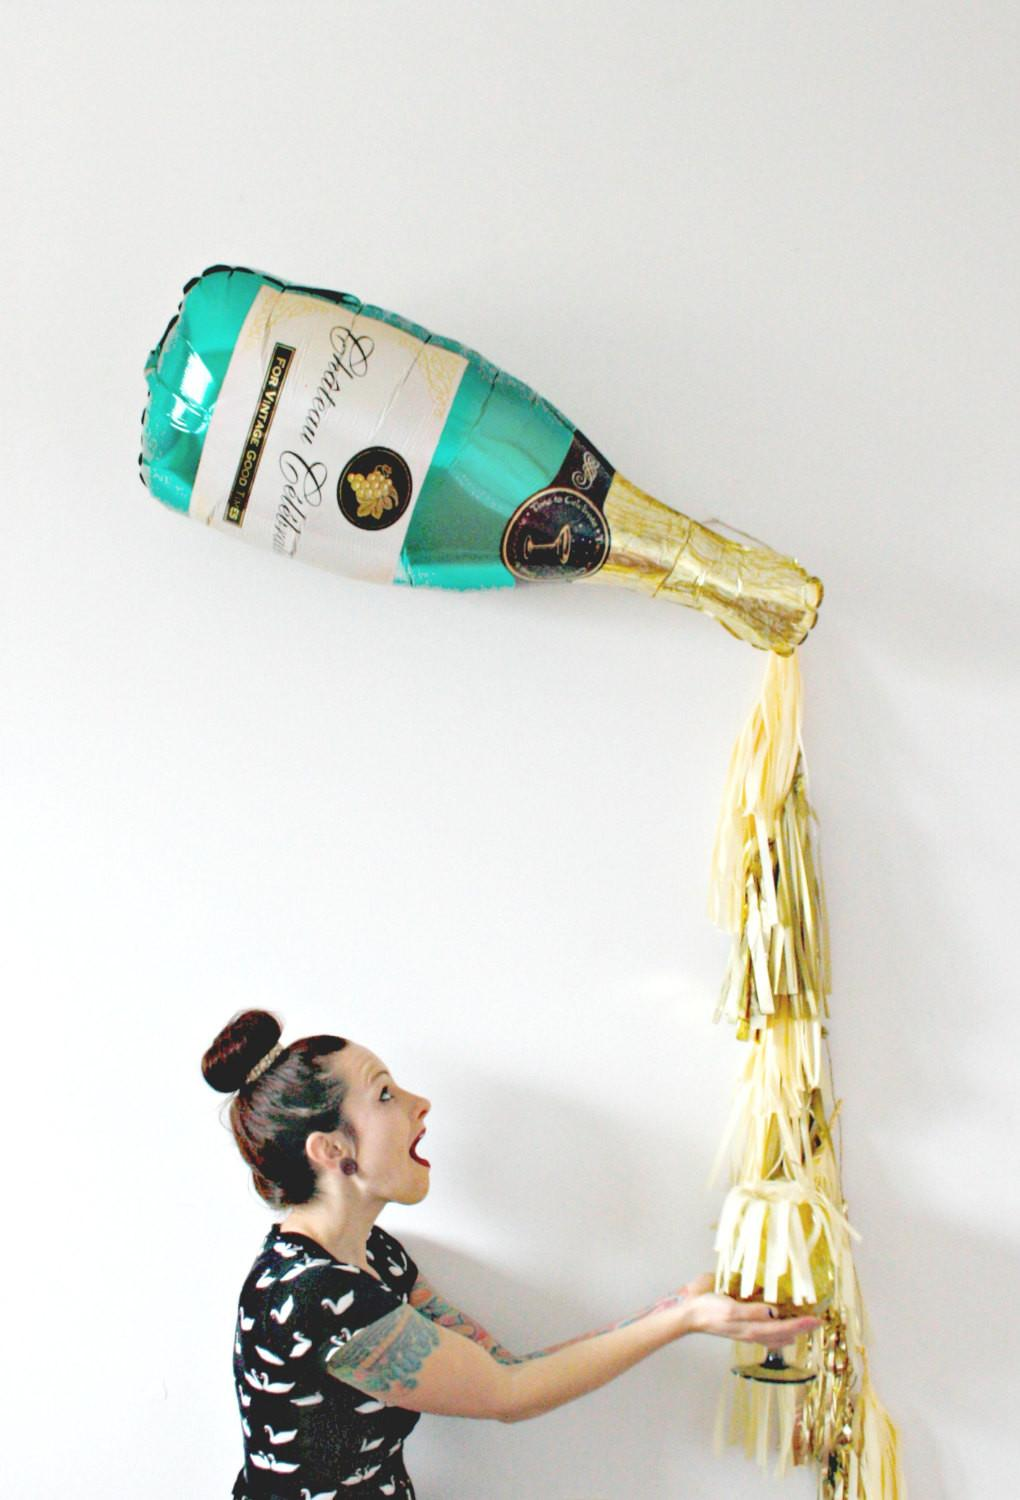 New Years Eve Champagne Bottle Tassel Balloon Bachelorette